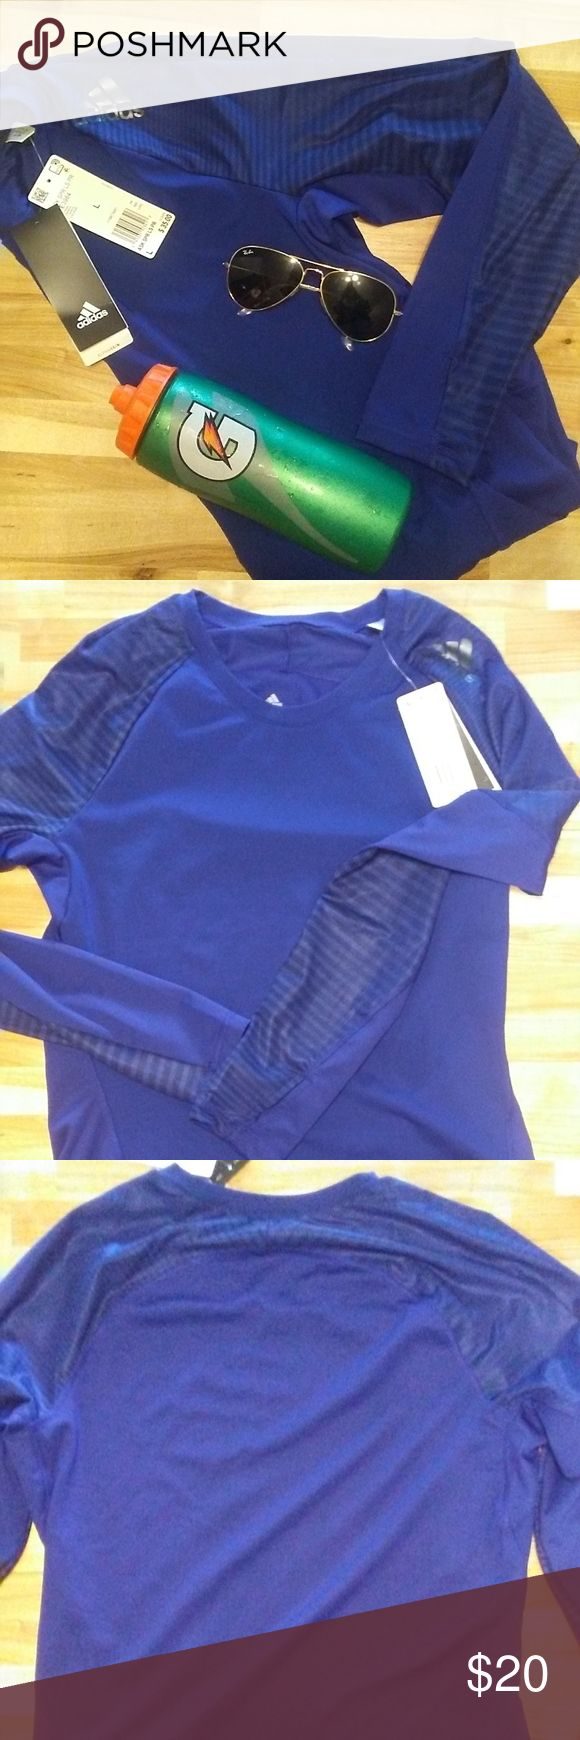 BRAND NEW ADIDAS ASK SPORTS LONG SLEEVE TOP! ADIDAS ASK SPORT PERFORMANCE TOP! BRAND NEW!!!  size: large Color: blue  *performance sports top *long sl…